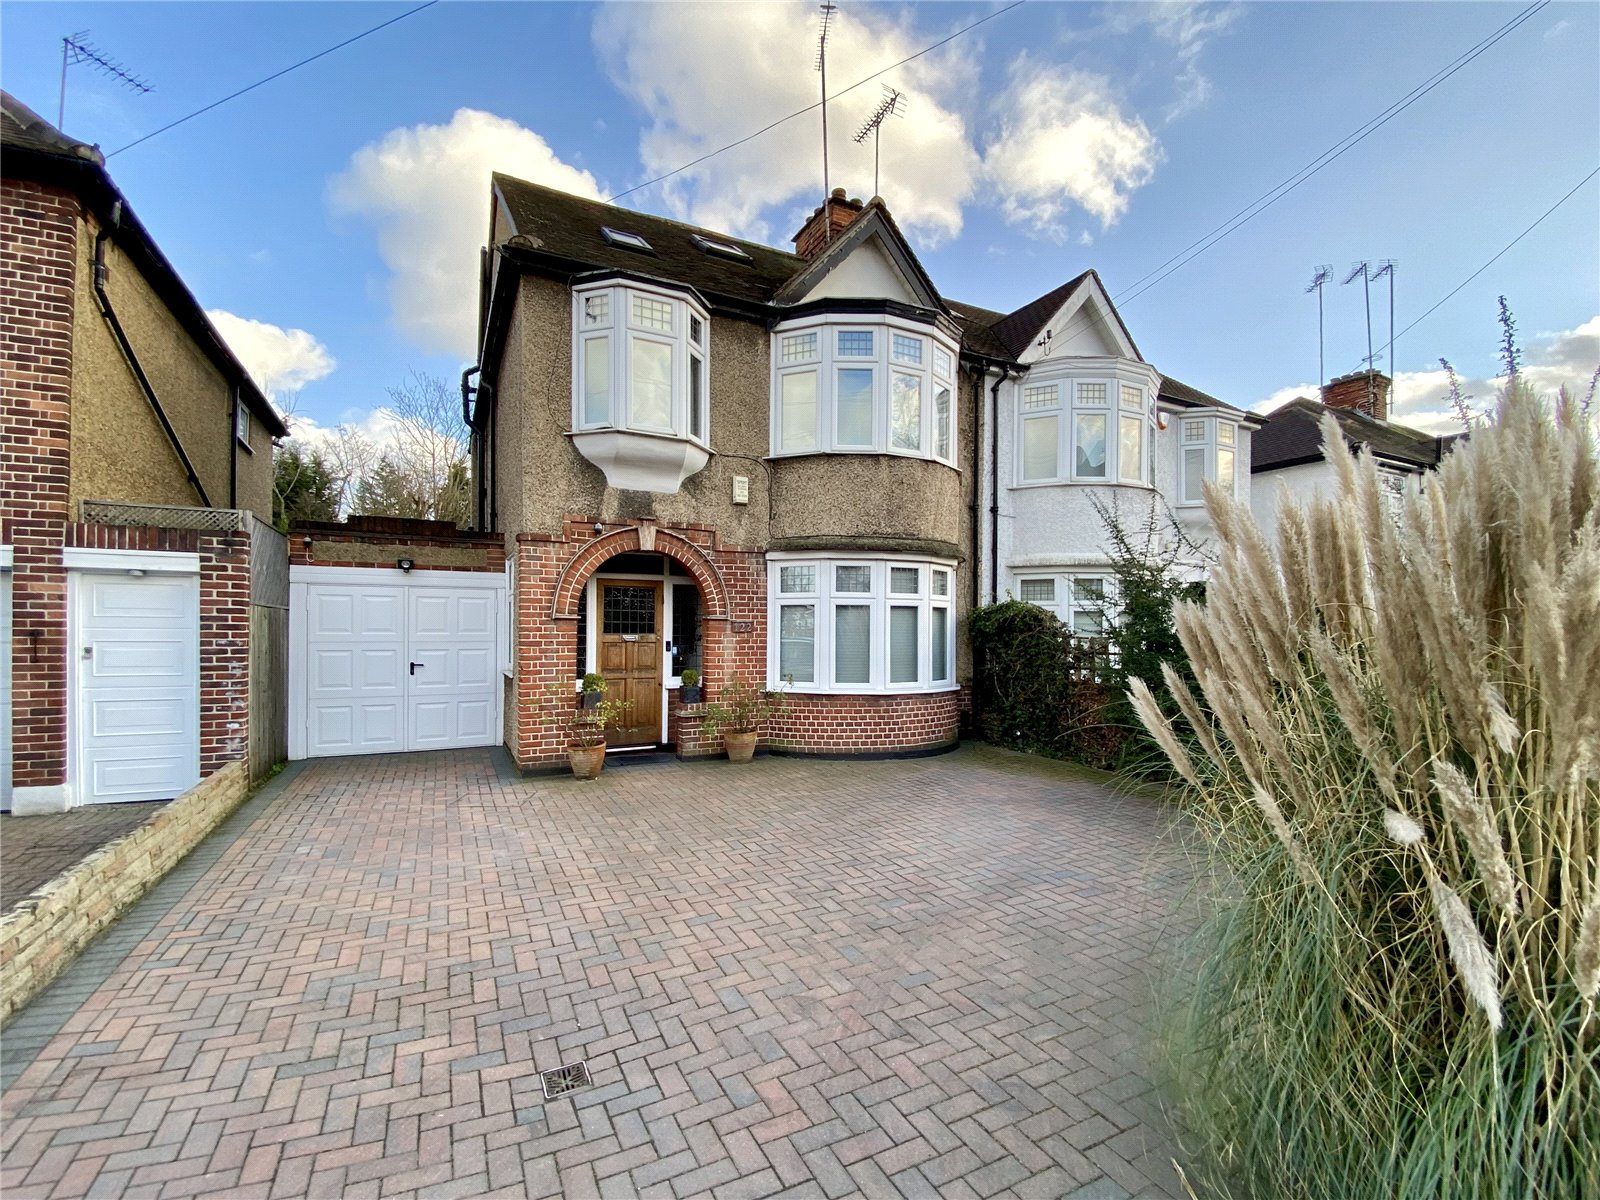 4 bed house for sale in Hendon, NW4 1LJ, NW4